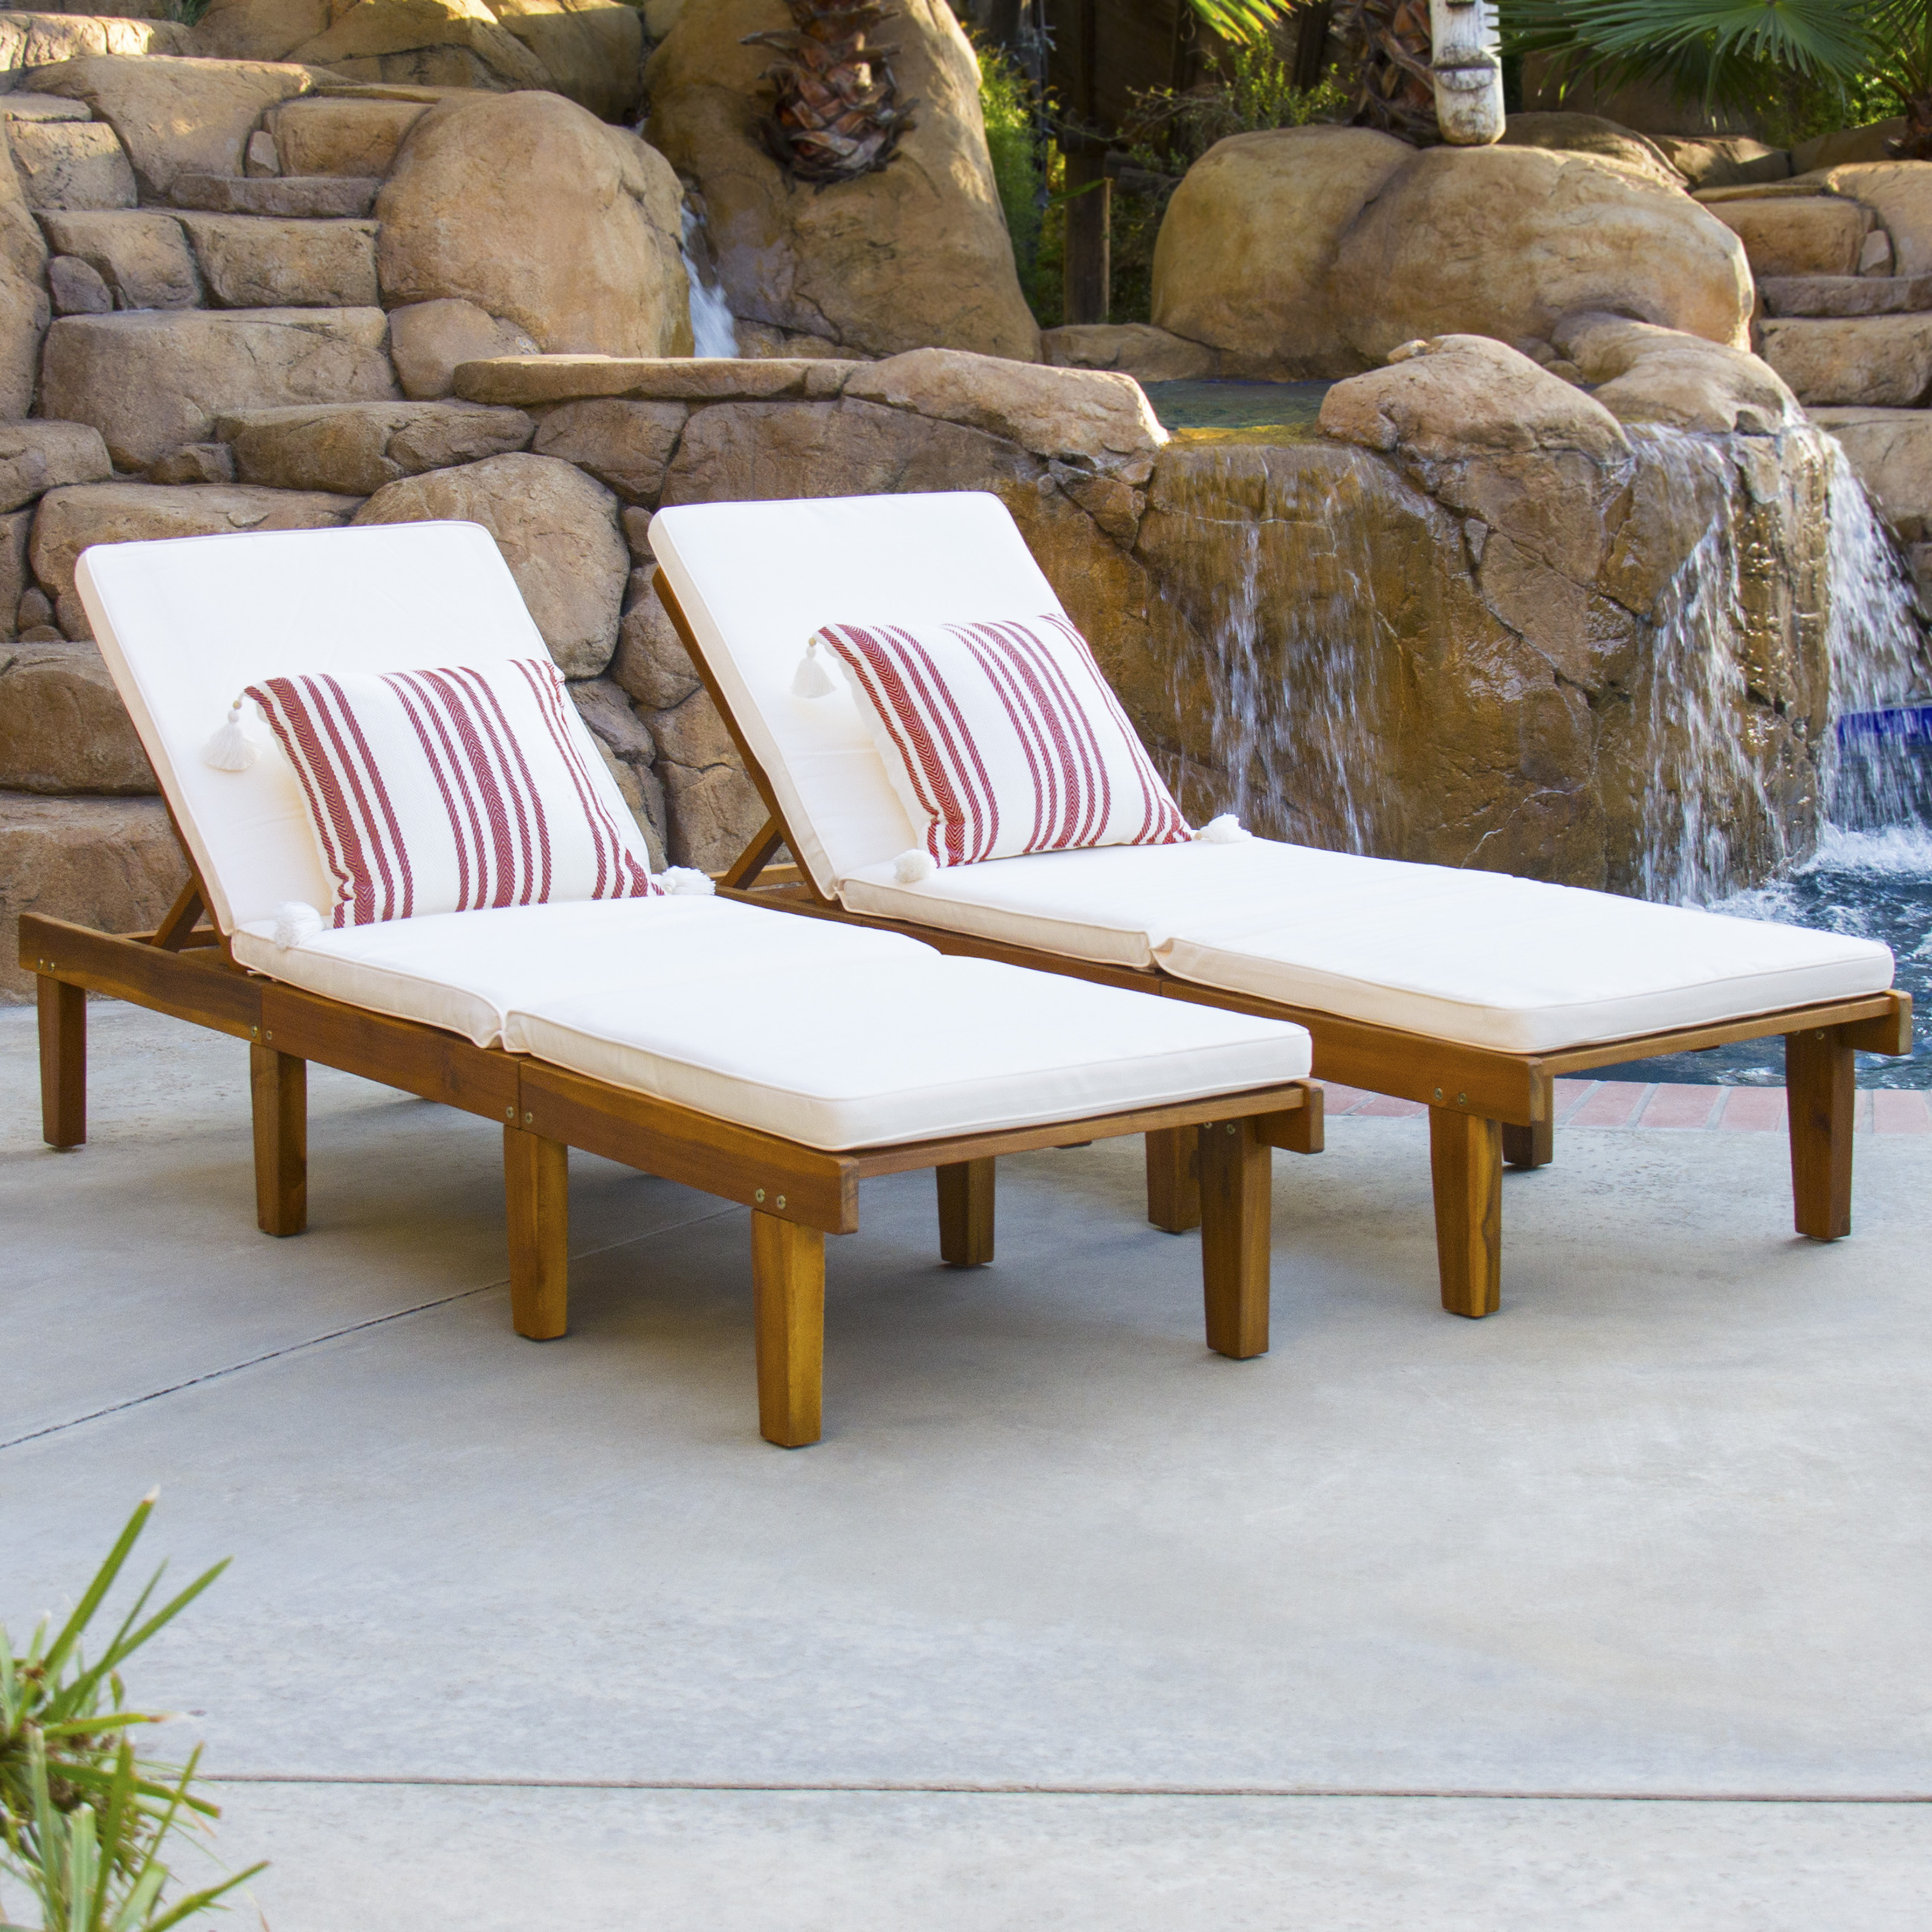 Best Choice Products Outdoor Patio Poolside Furniture Set Of 2 Acacia Wood Chaise Lounge Pertaining To Newest Outdoor 3 Piece Acacia Wood Chaise Lounge Sets (View 12 of 25)